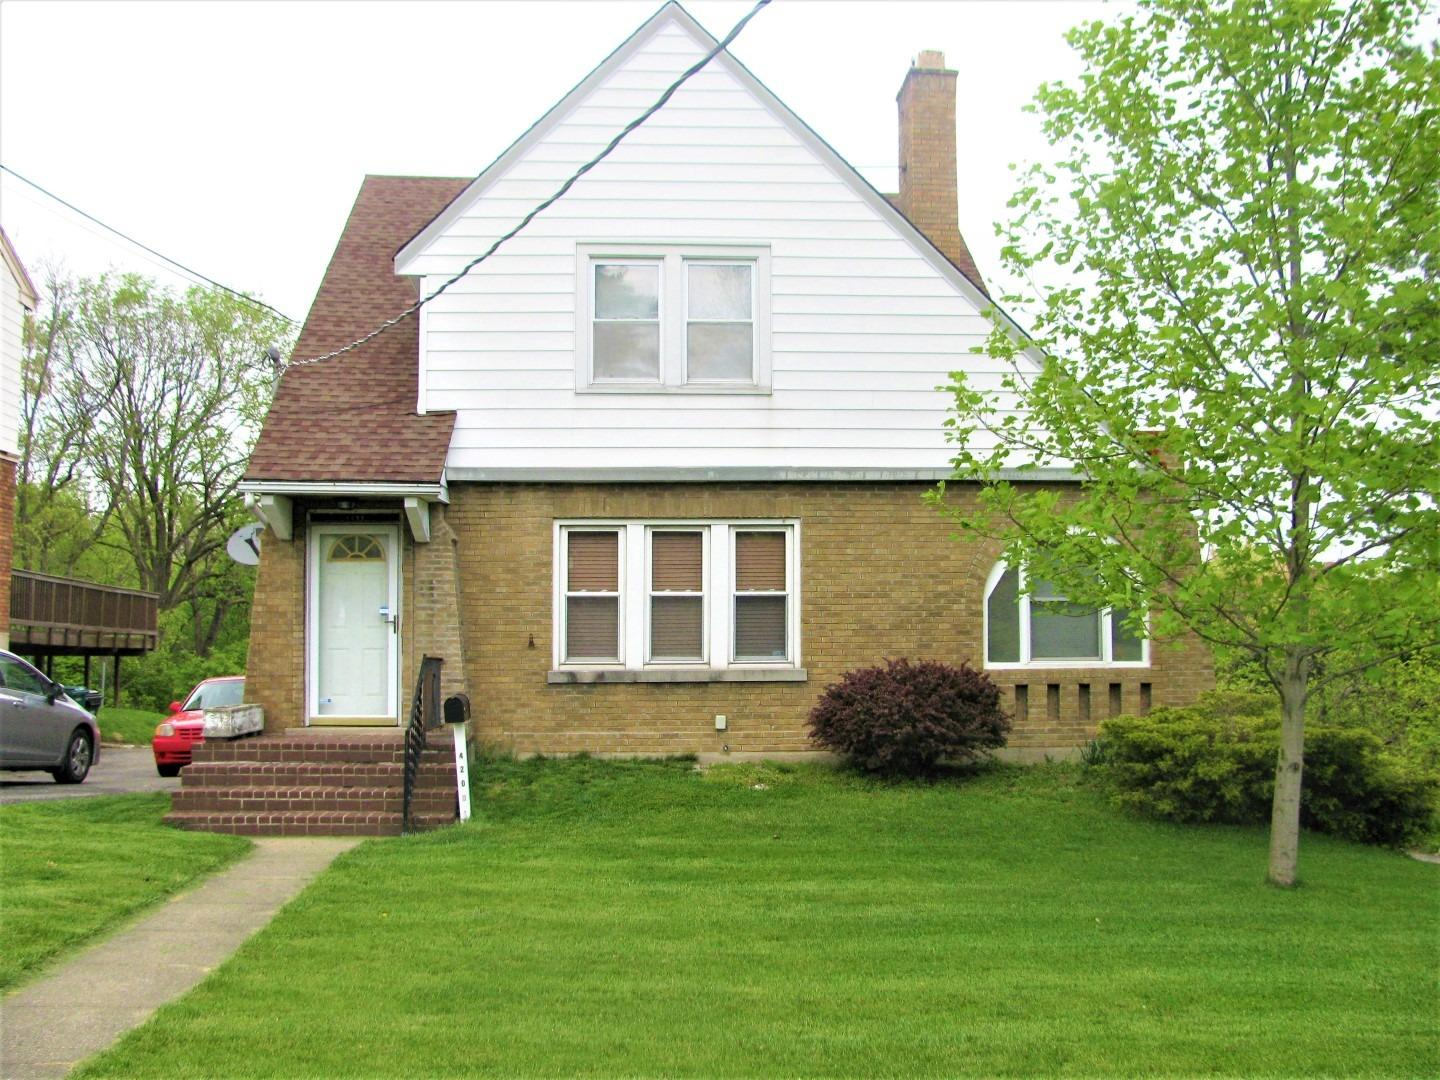 Photo 1 for 4208 W Eighth St Price Hill, OH 45205